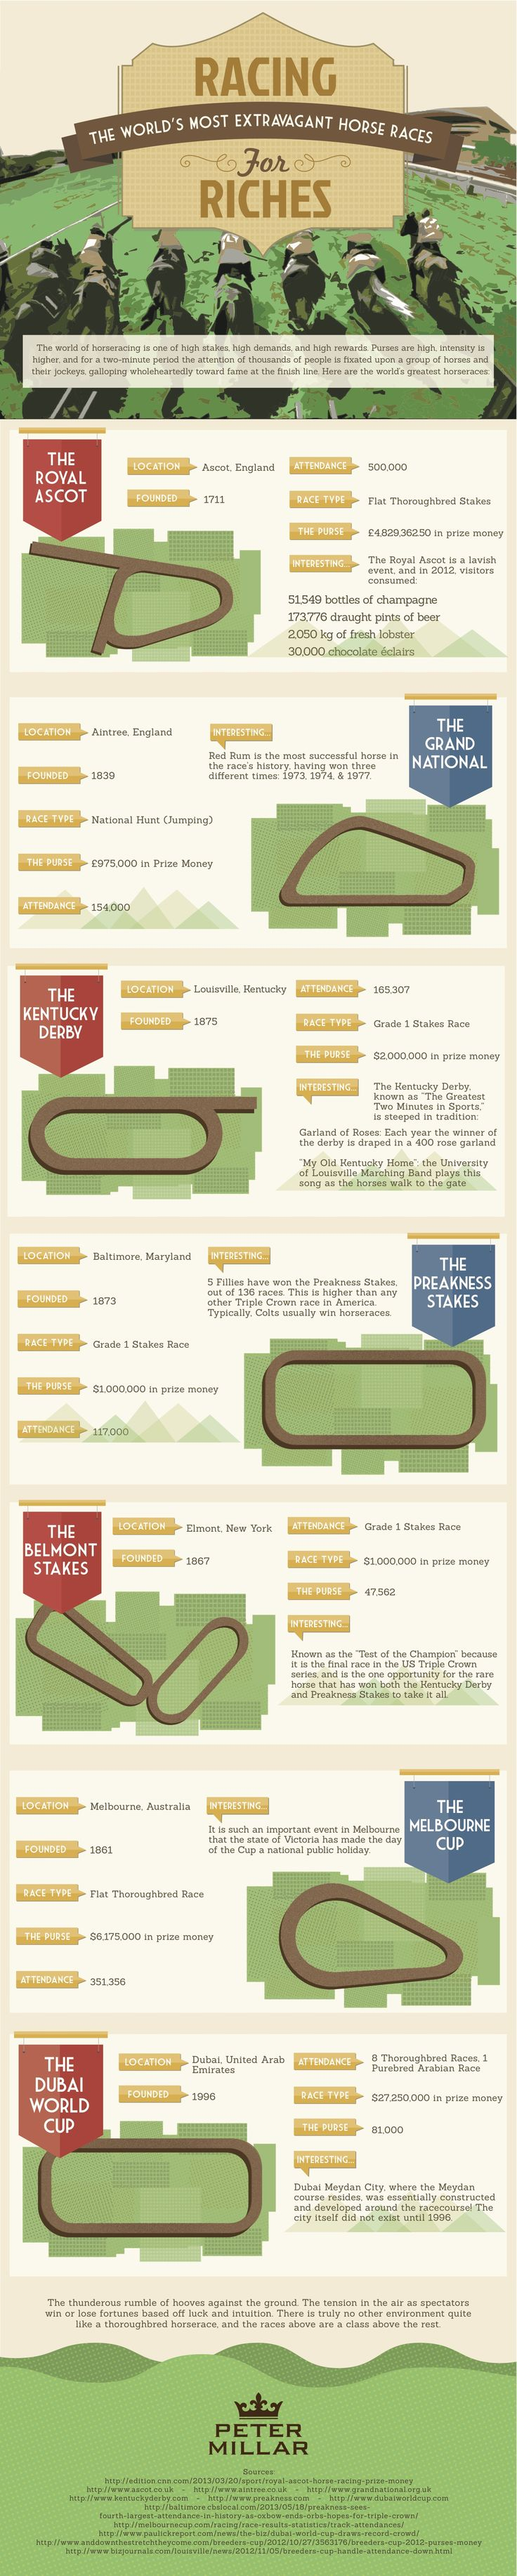 Racing the World's Most Extravagant Horses for Riches (infographic) - WorldVillage